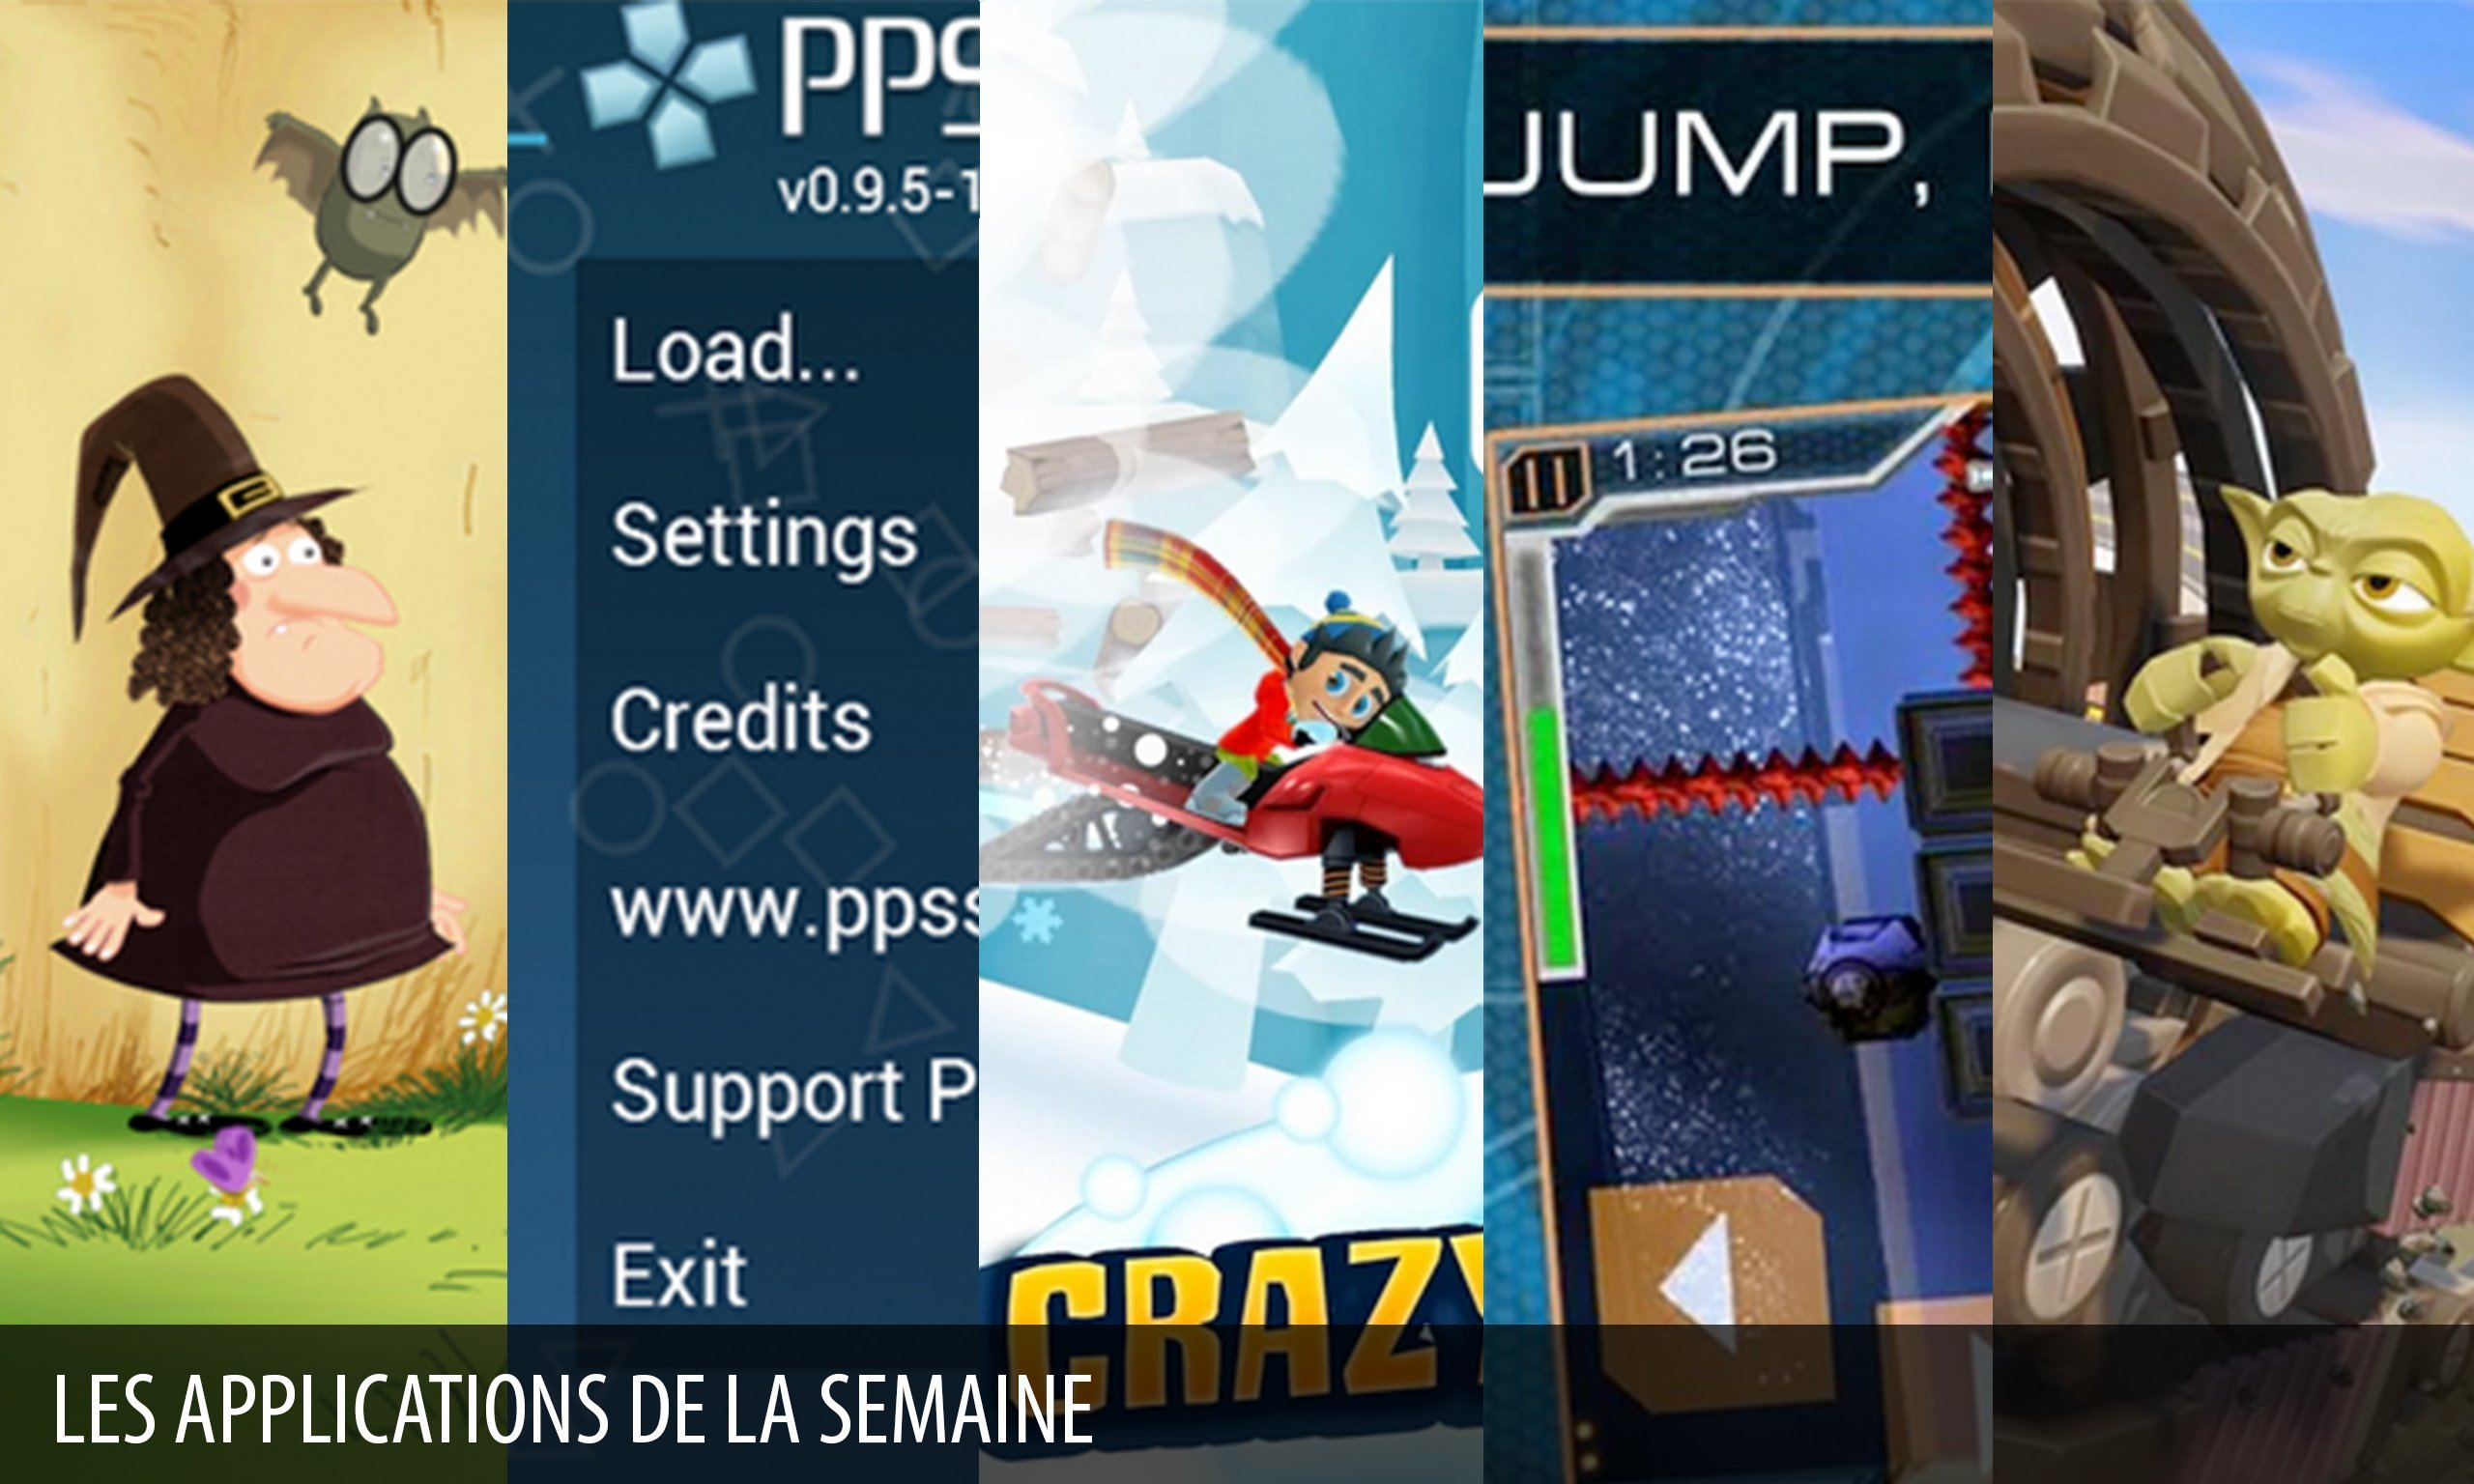 Les apps de la semaine : PPSSPP – PSP emulator, Disney Infinity 3.0 Toy Box…